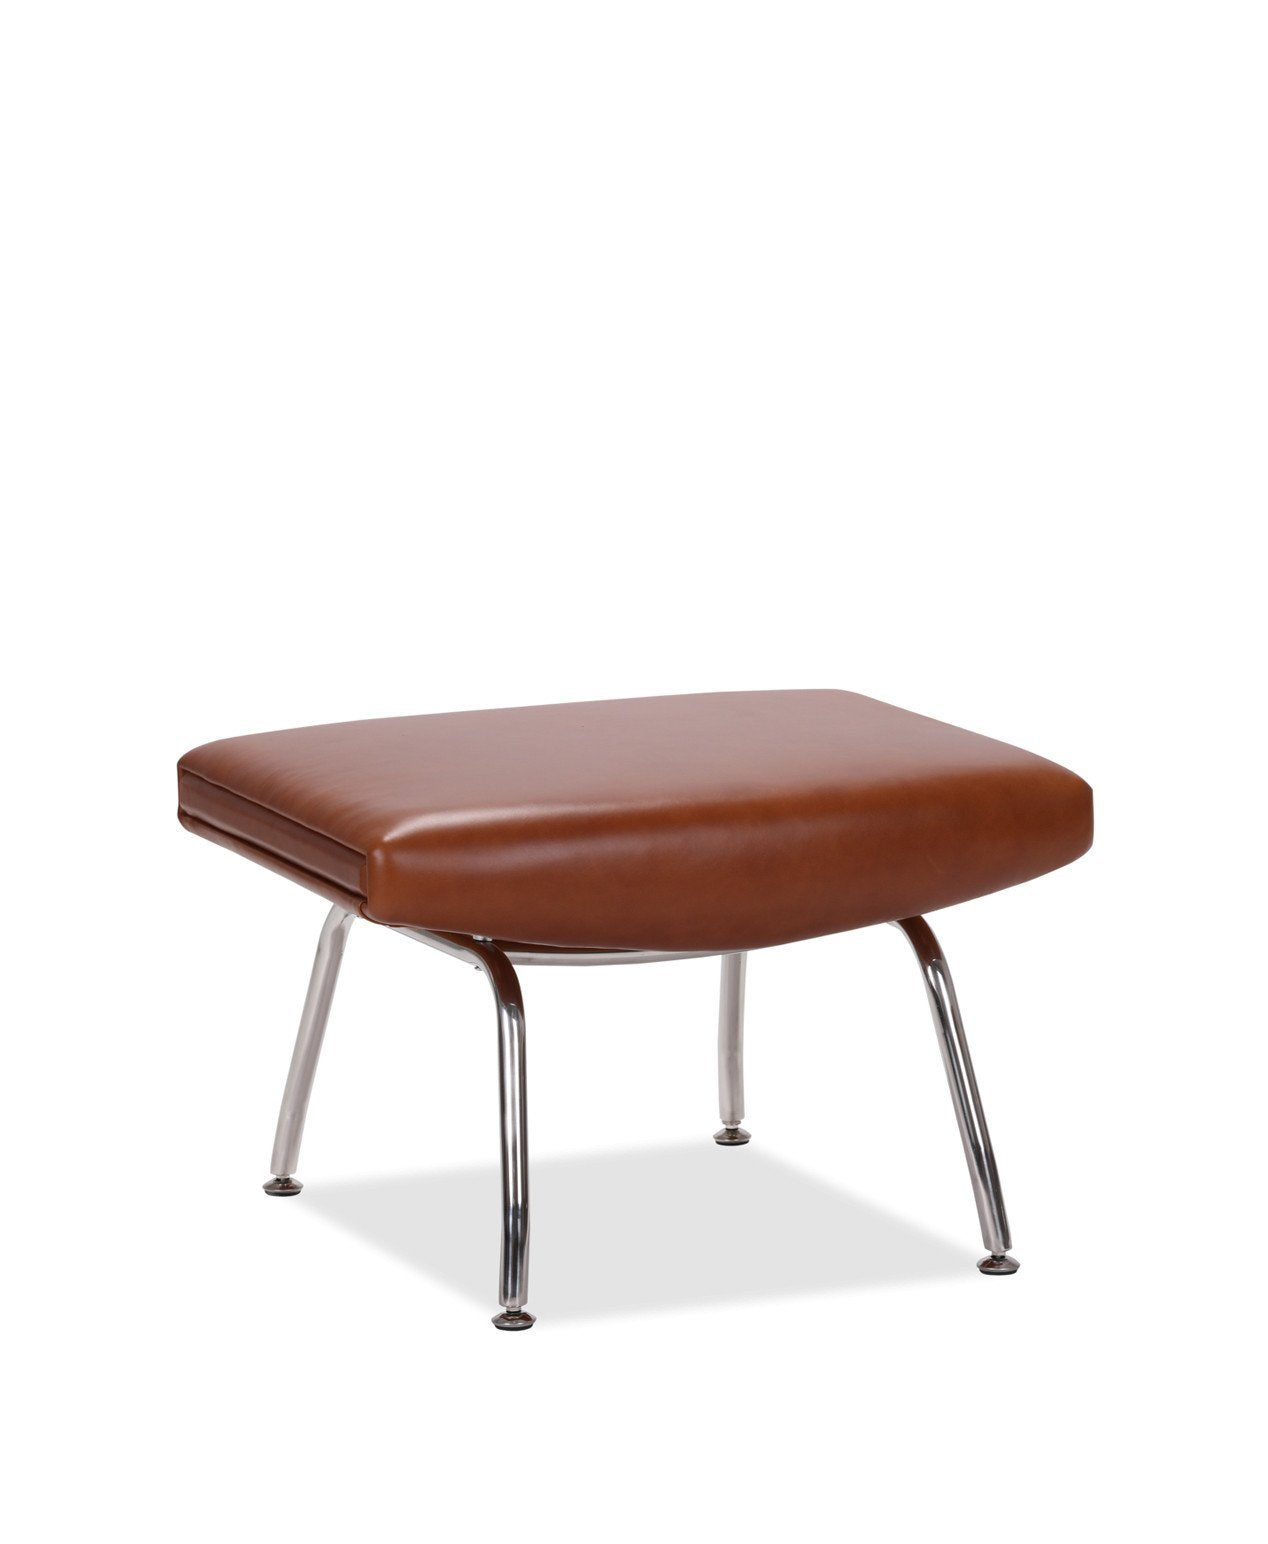 Ox stool classic leather for Eames replica schaukelstuhl